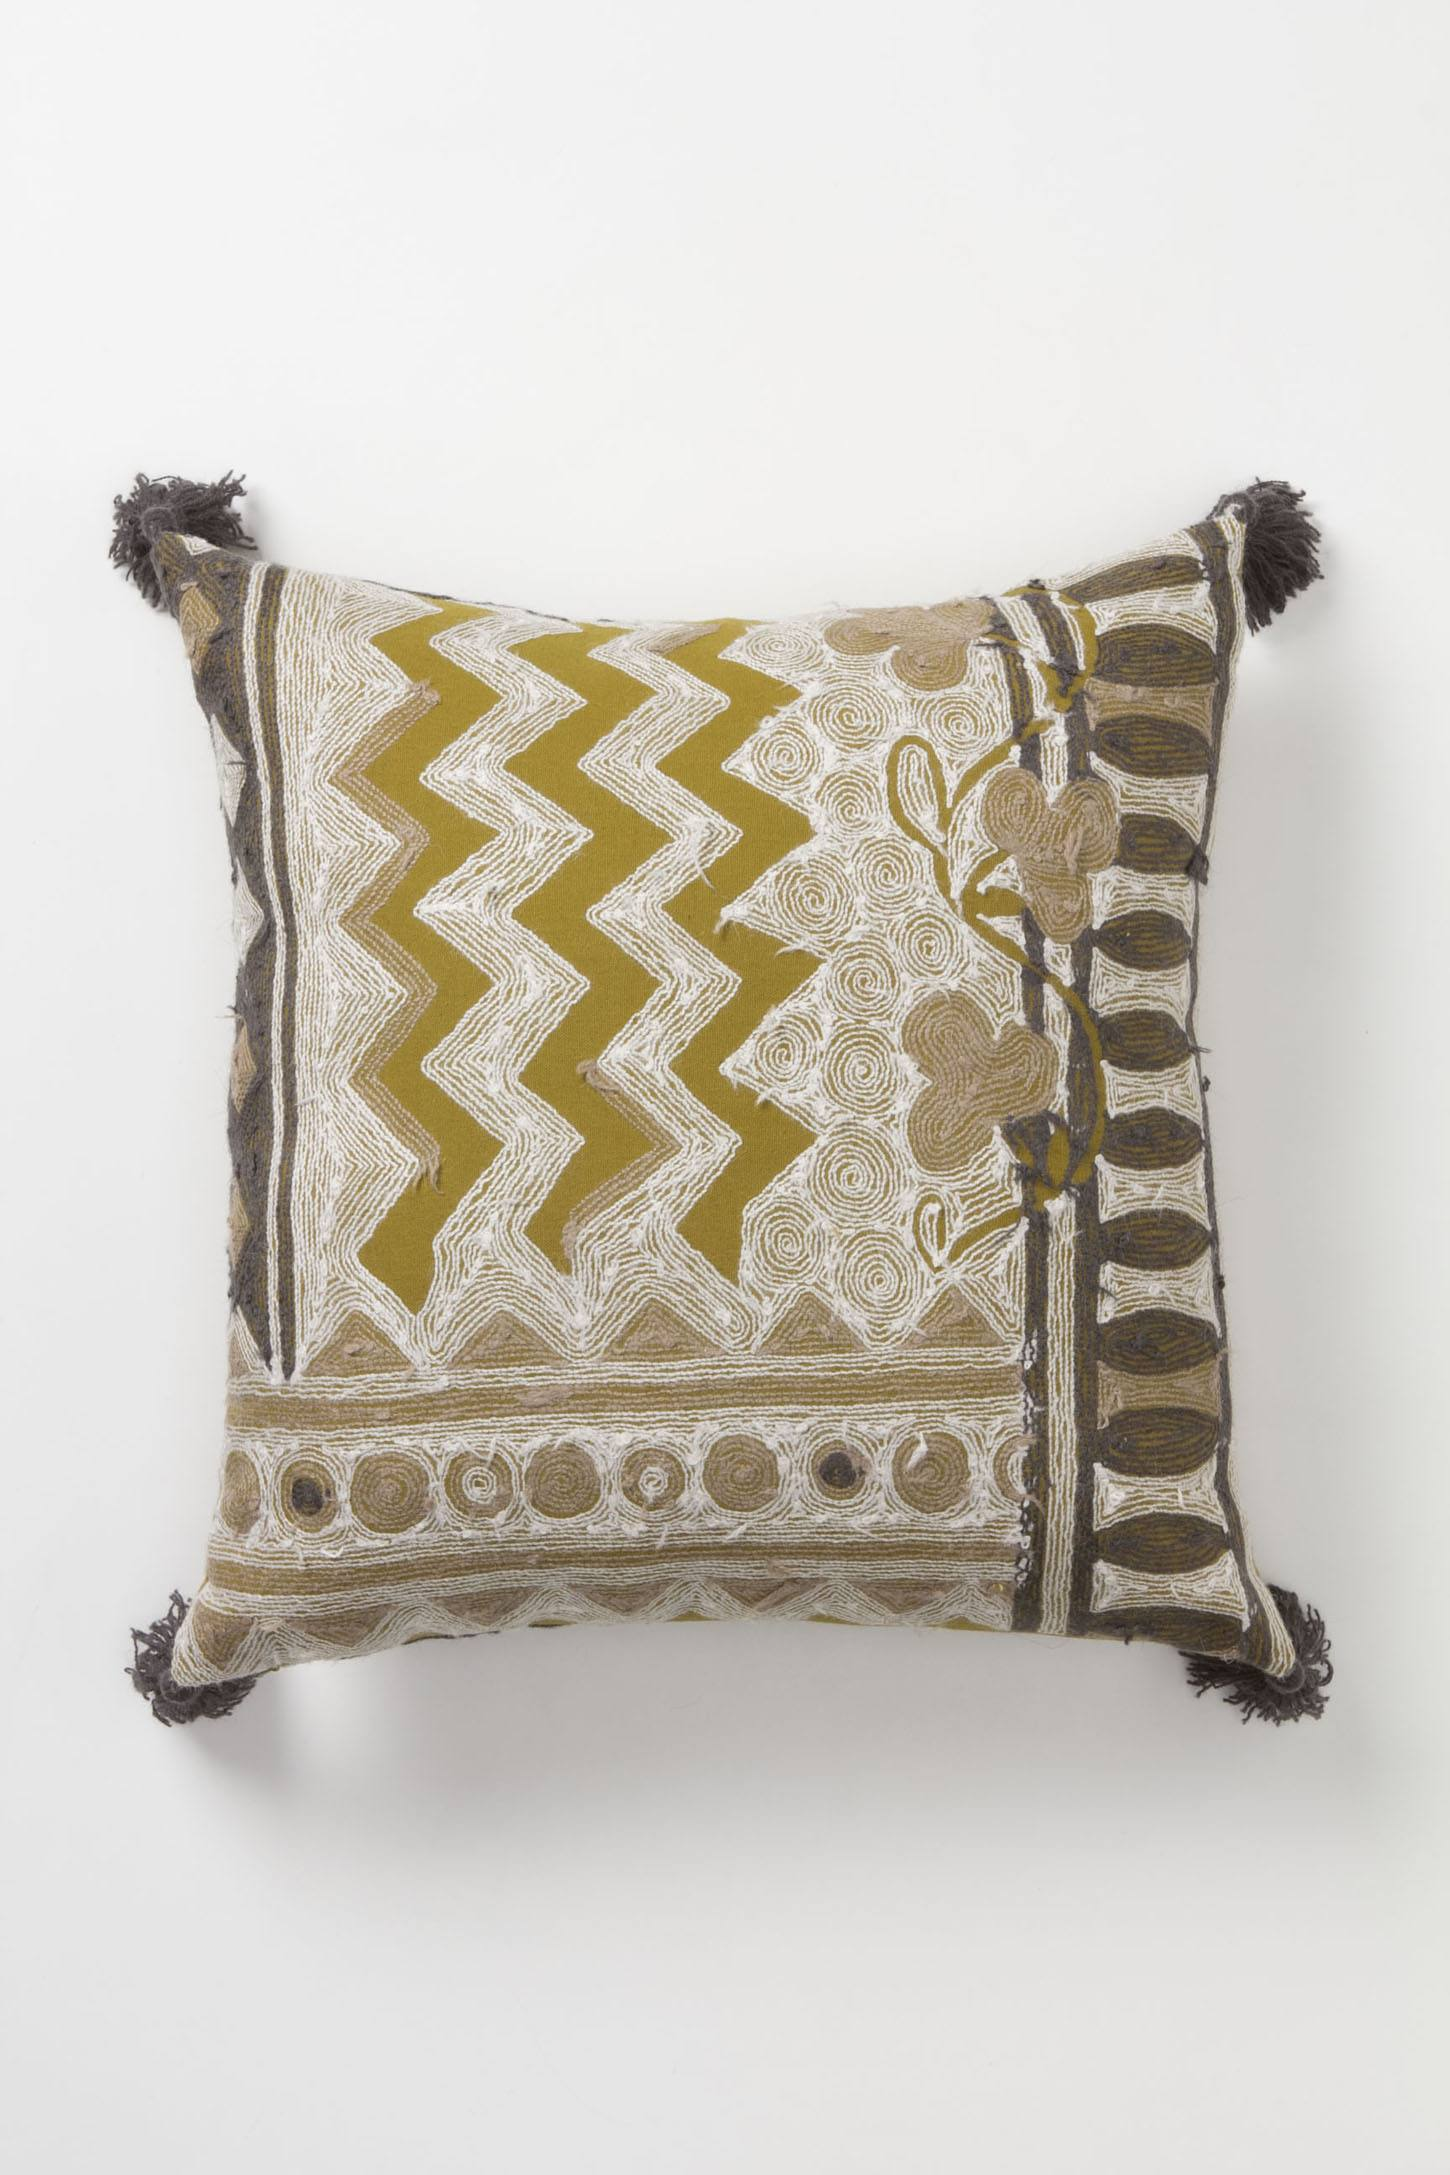 Nearer Nurata Square Pillow from Anthropologie